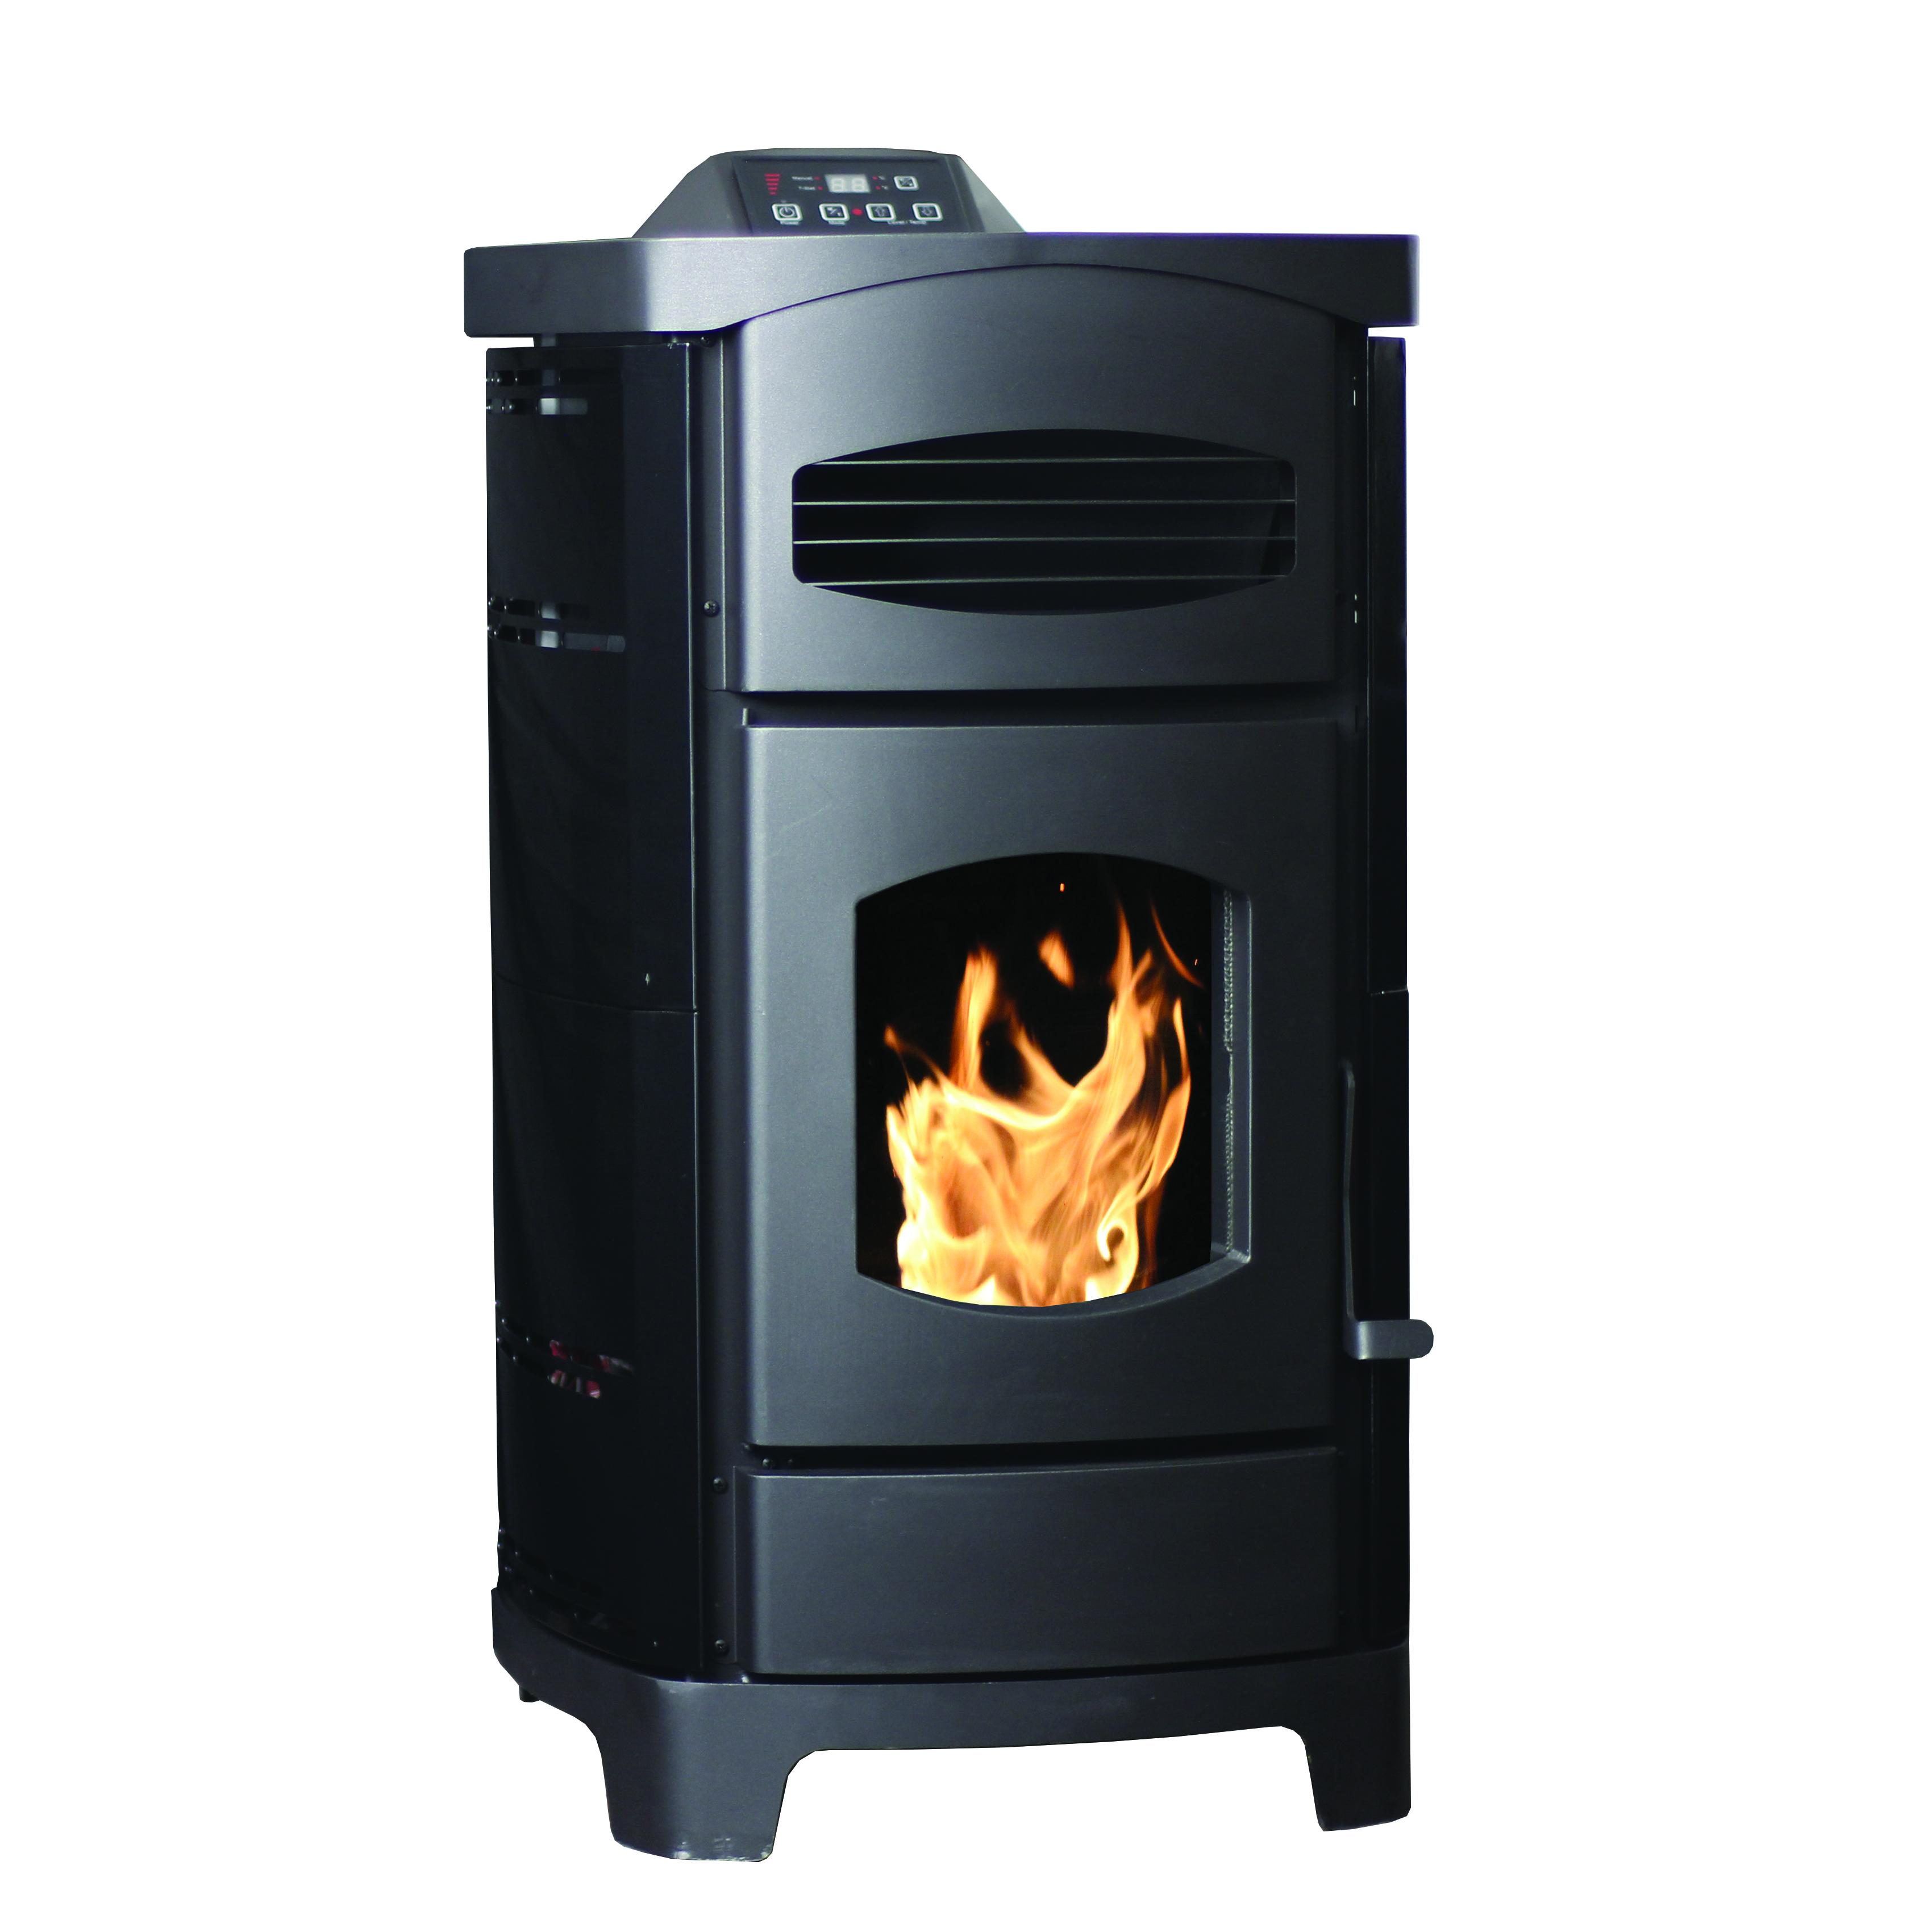 2,200 Sq. Ft. EPA Certified Pellet Stove with Gloss Black Curved Sides